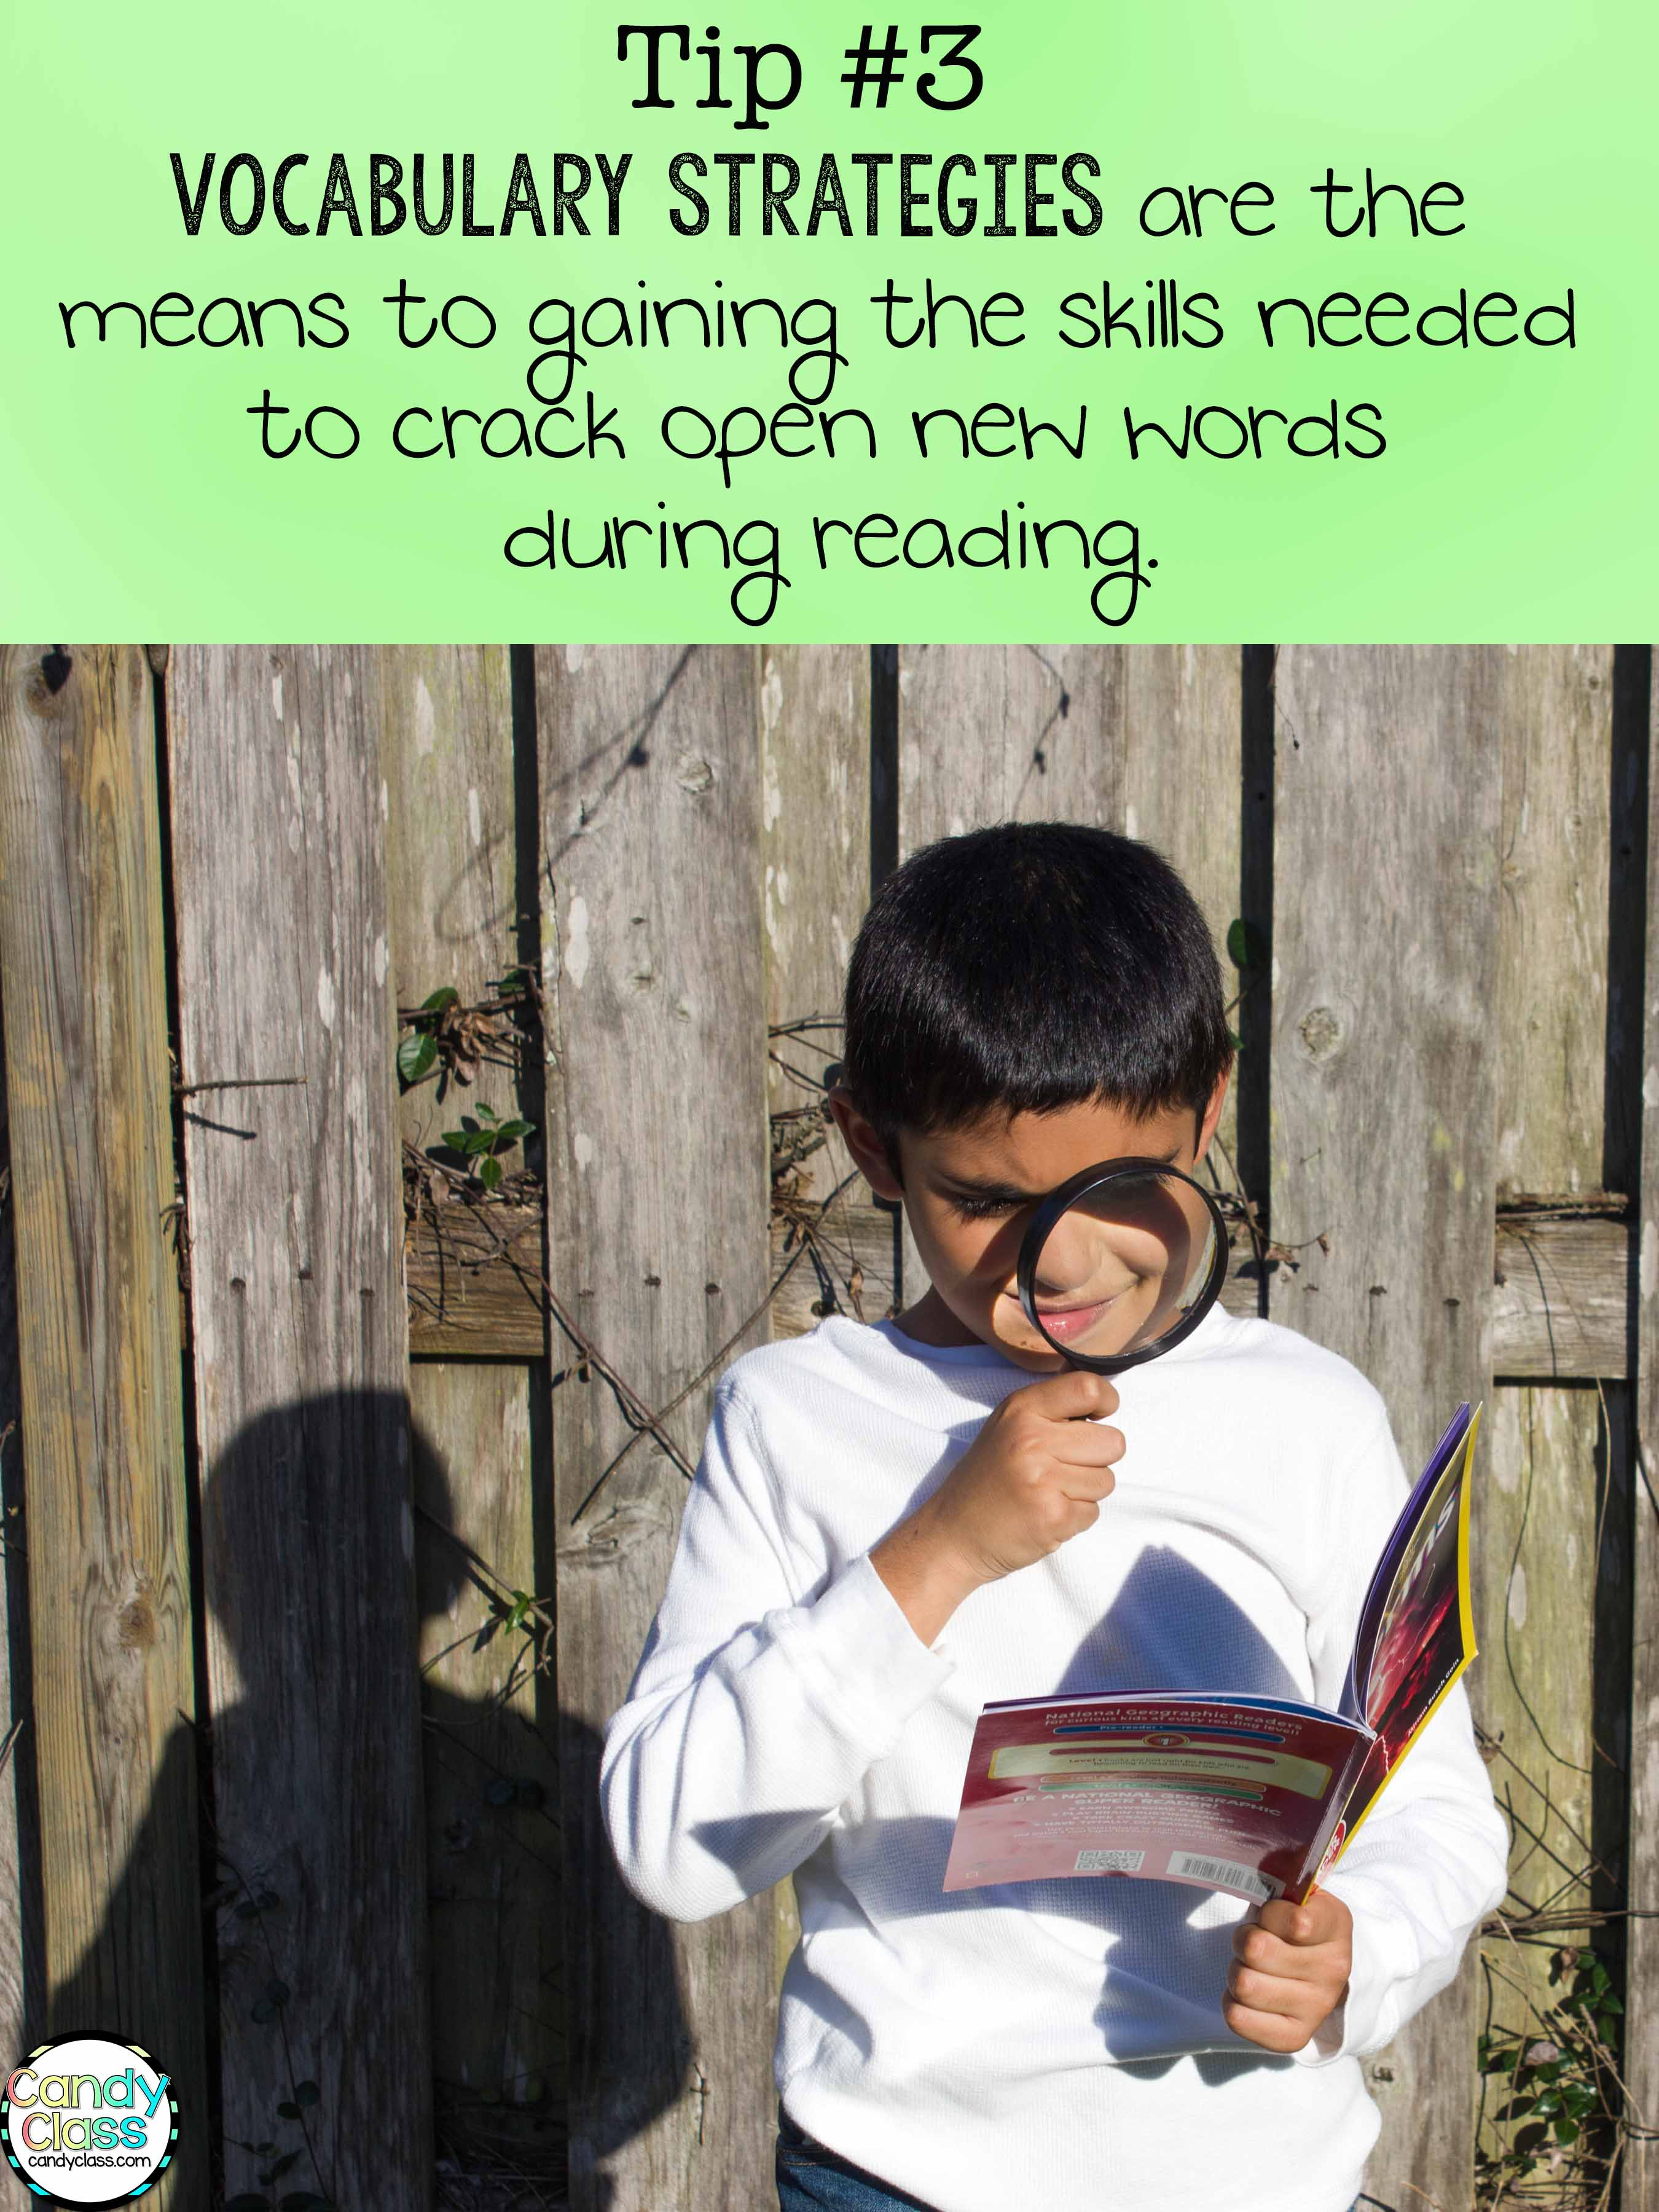 Vocabulary Strategies Means to Cracking Open New Words Tip